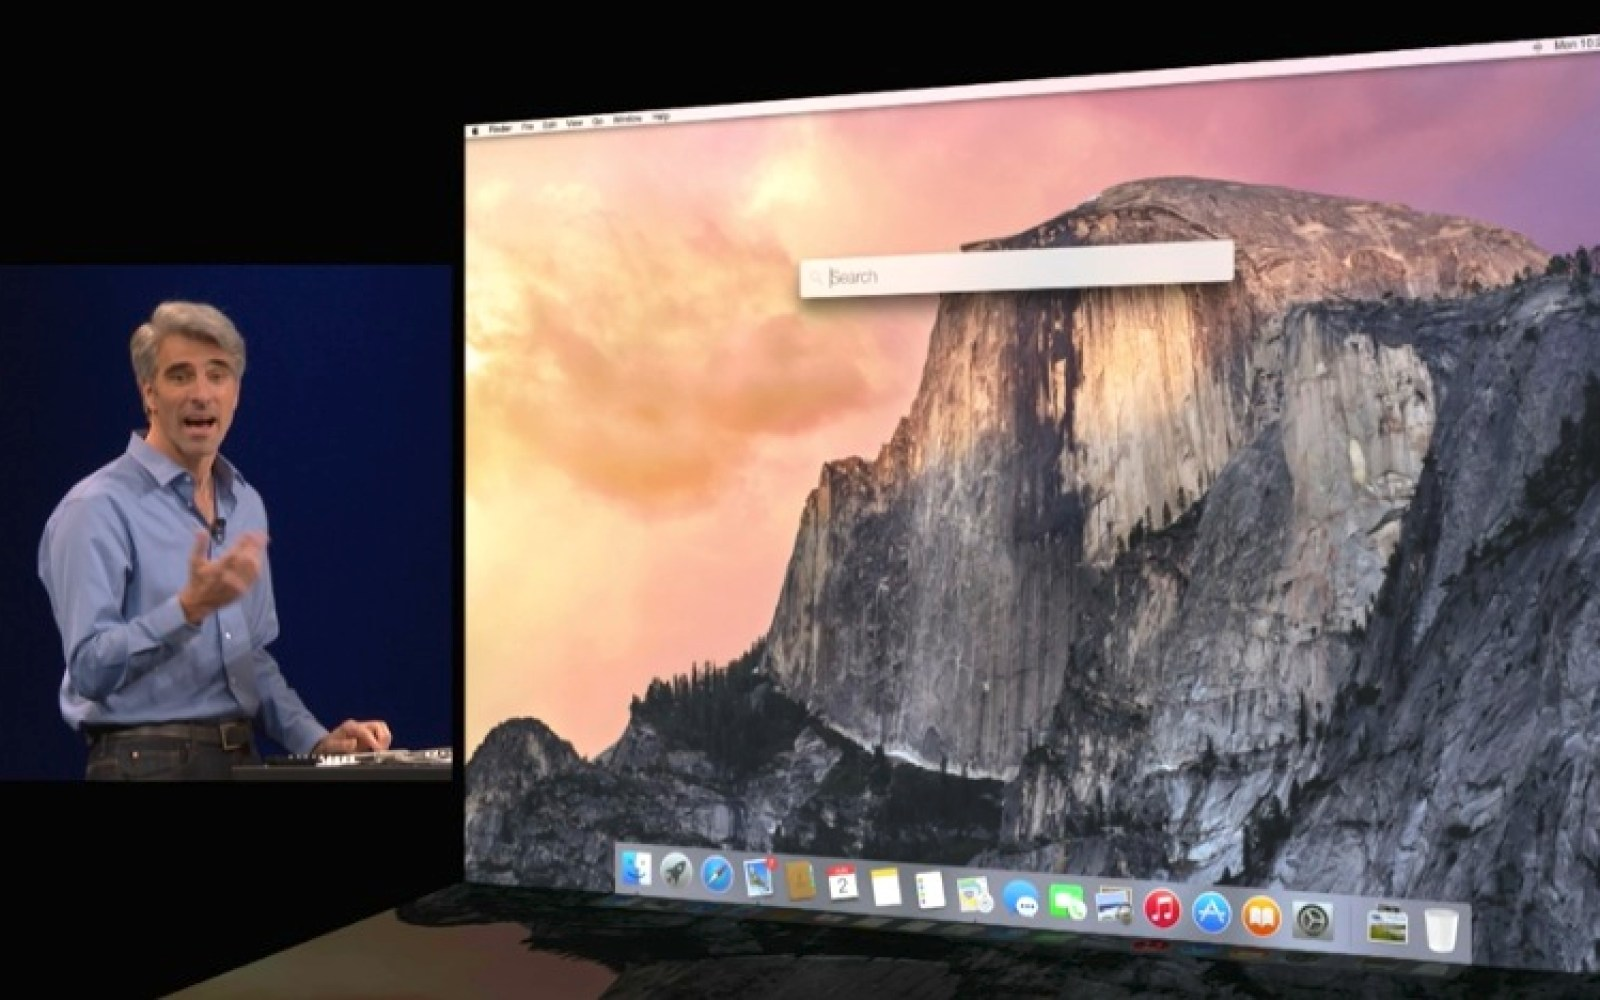 Spotlight in OS X Yosemite gains new and advanced search functionality